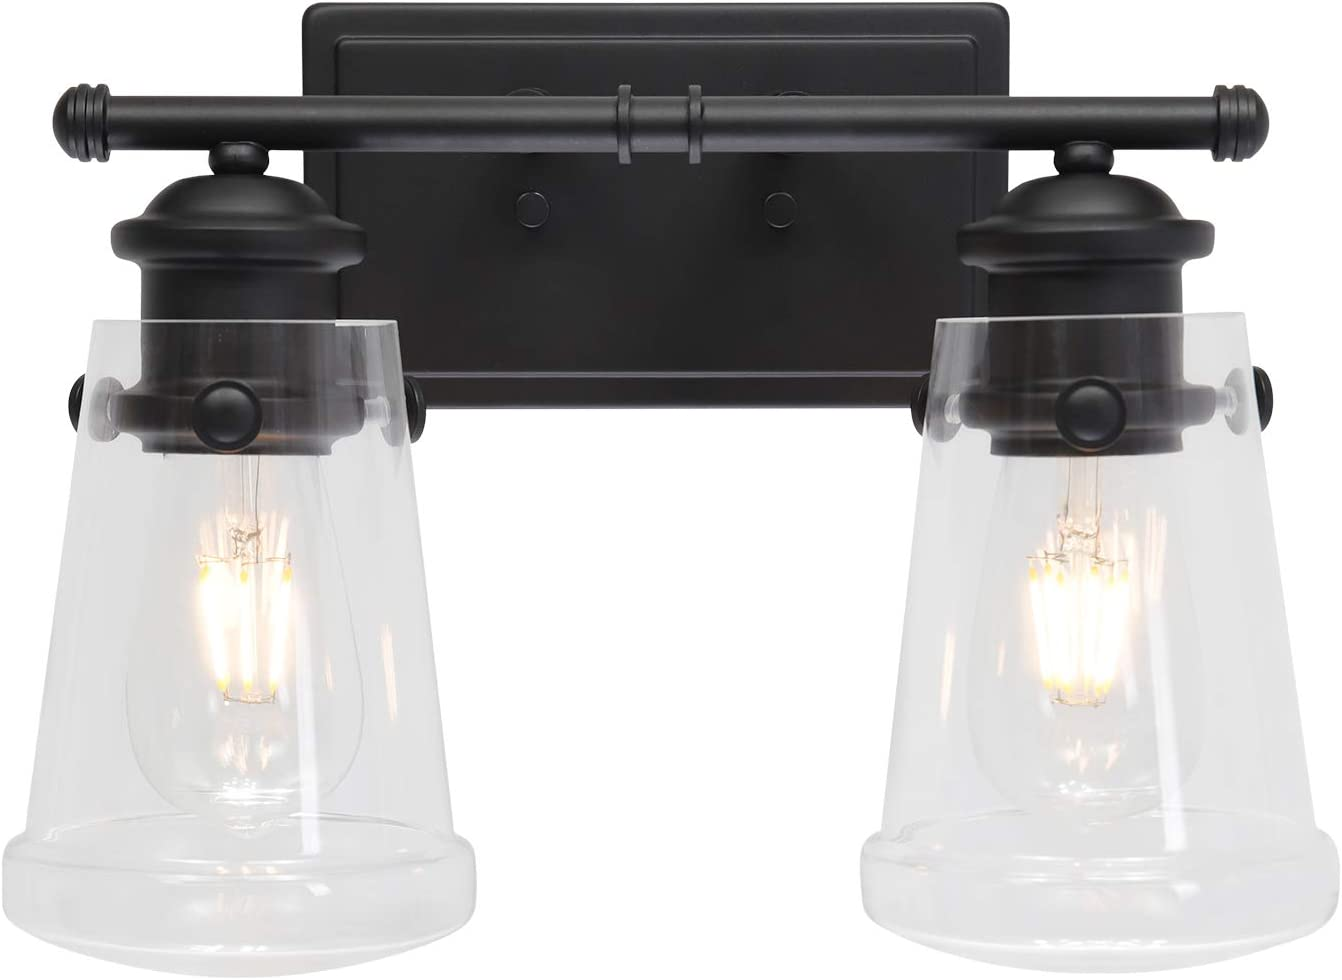 YAOHONG 2-Lights Wall Sconce Vanity Lighting Bathroom Lamp in Black with Clear Glass Shades Wall Mounted Light Fixtures for Bedroom Stairs and Kitchen